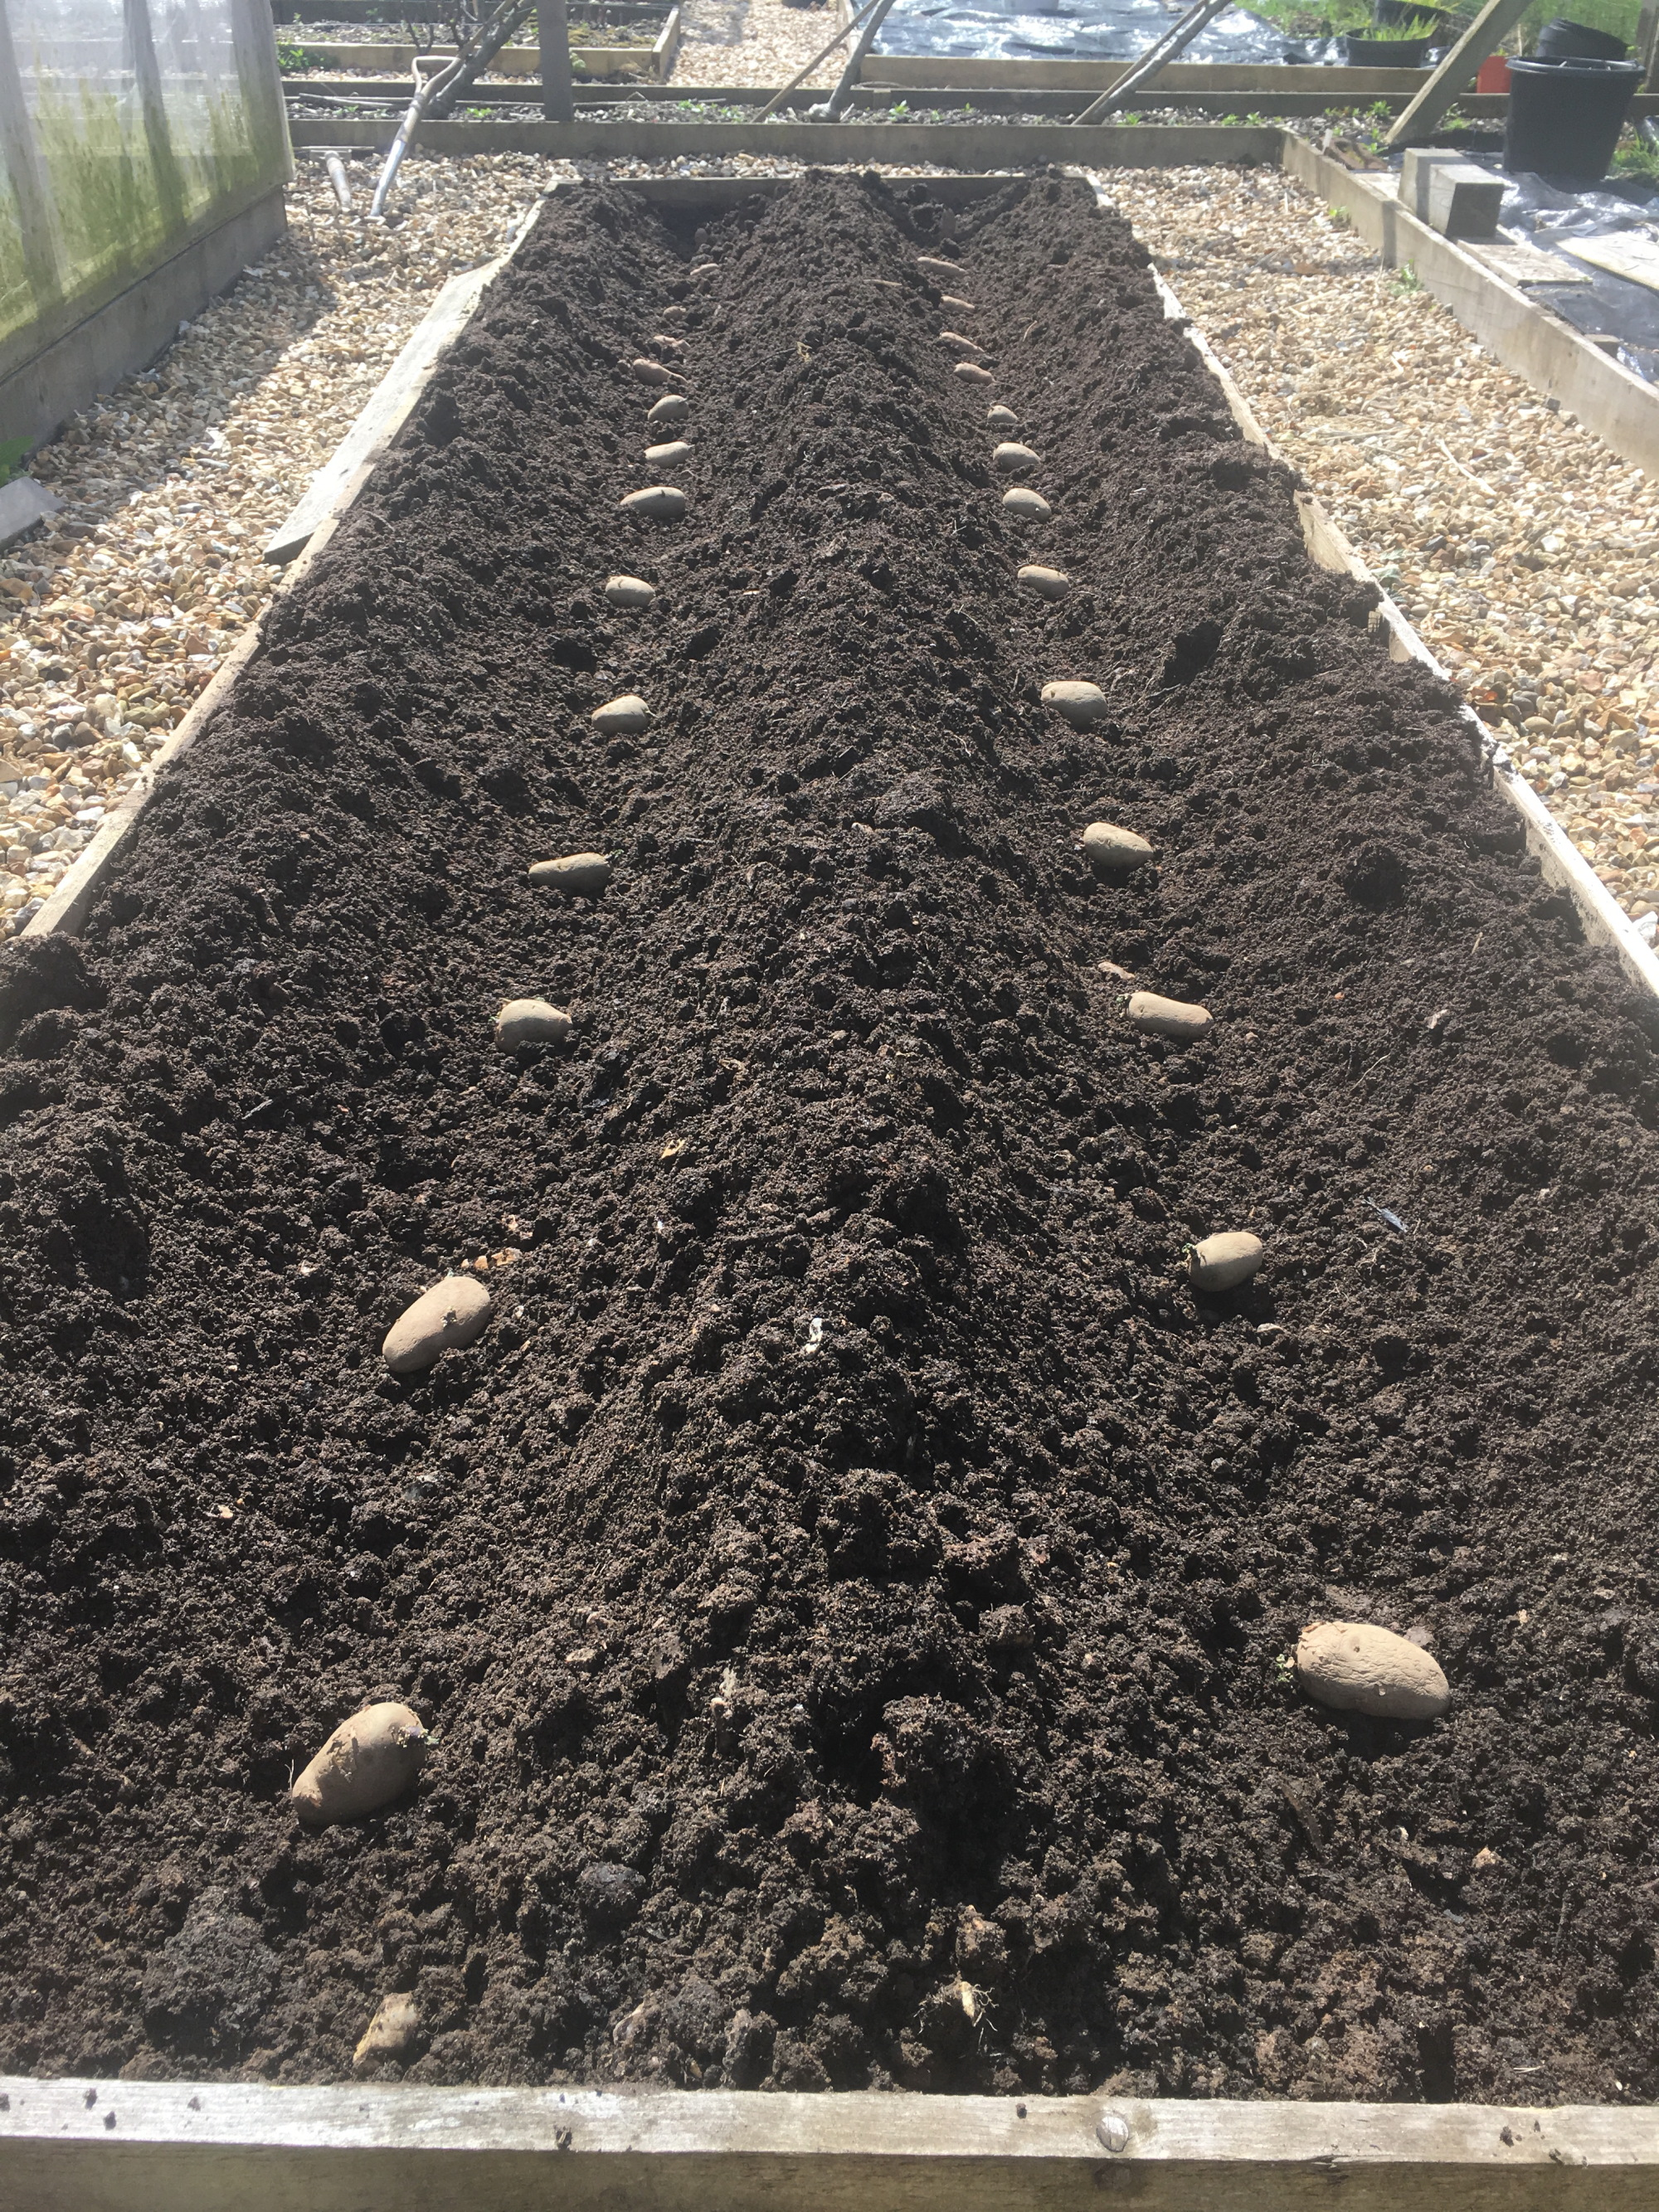 Chitted potatoes laid out ready for planting